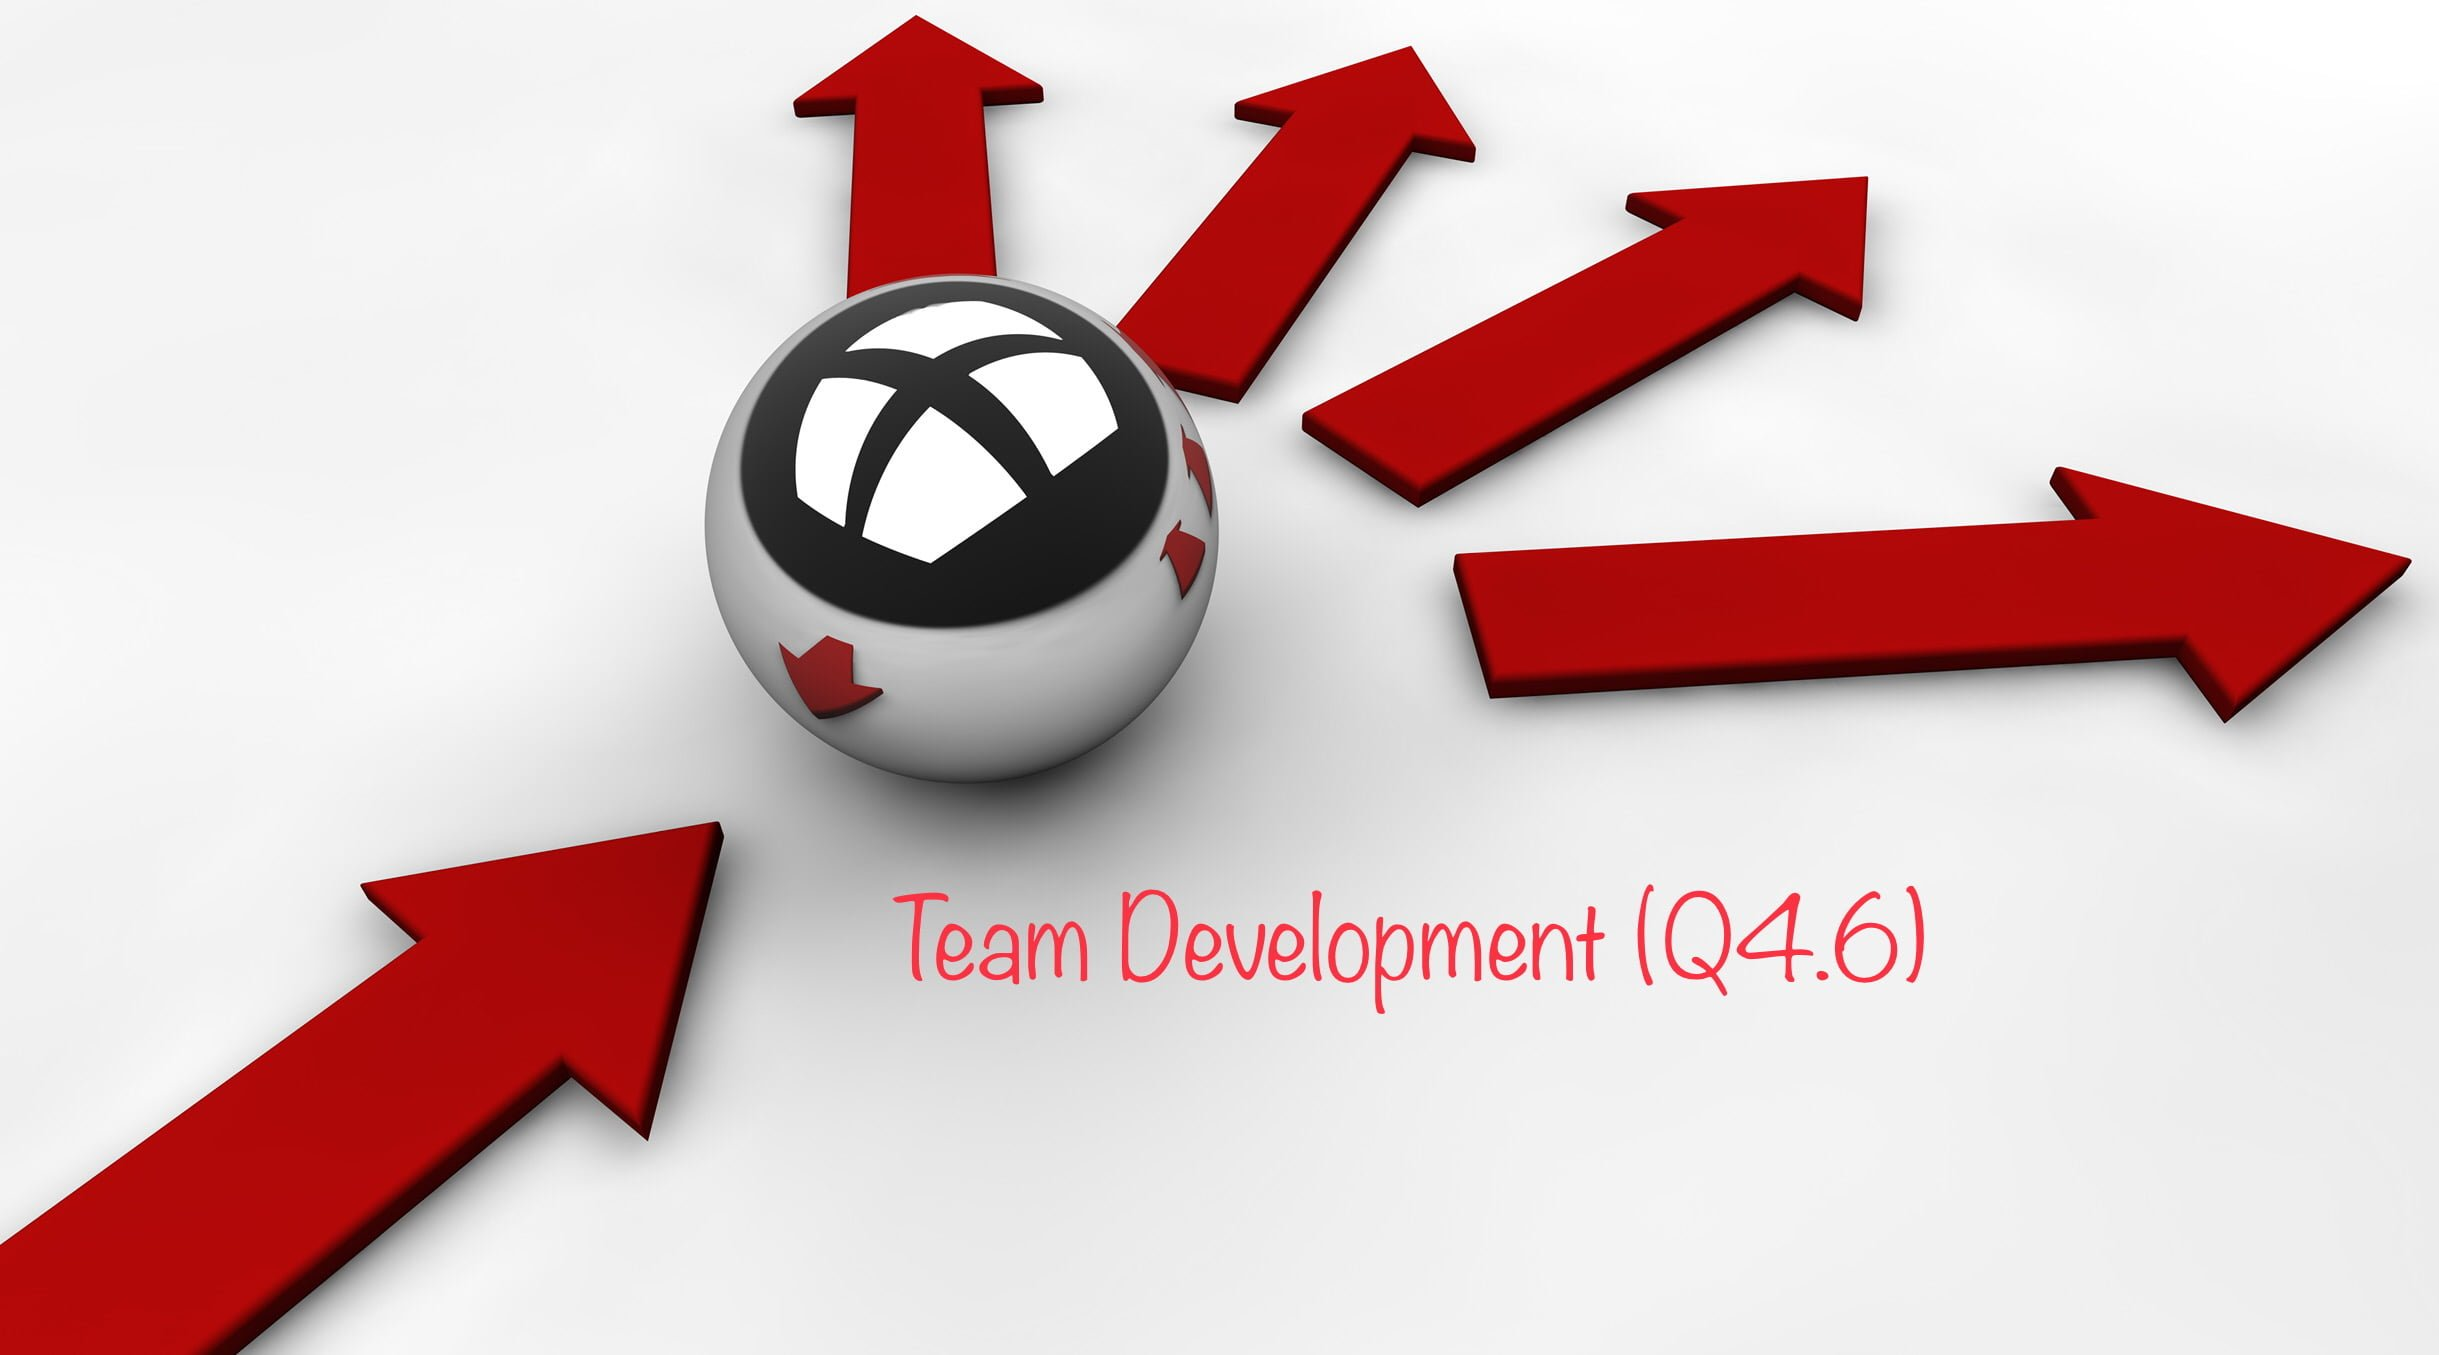 TEAM DEVELOPMENT (Q4.6)